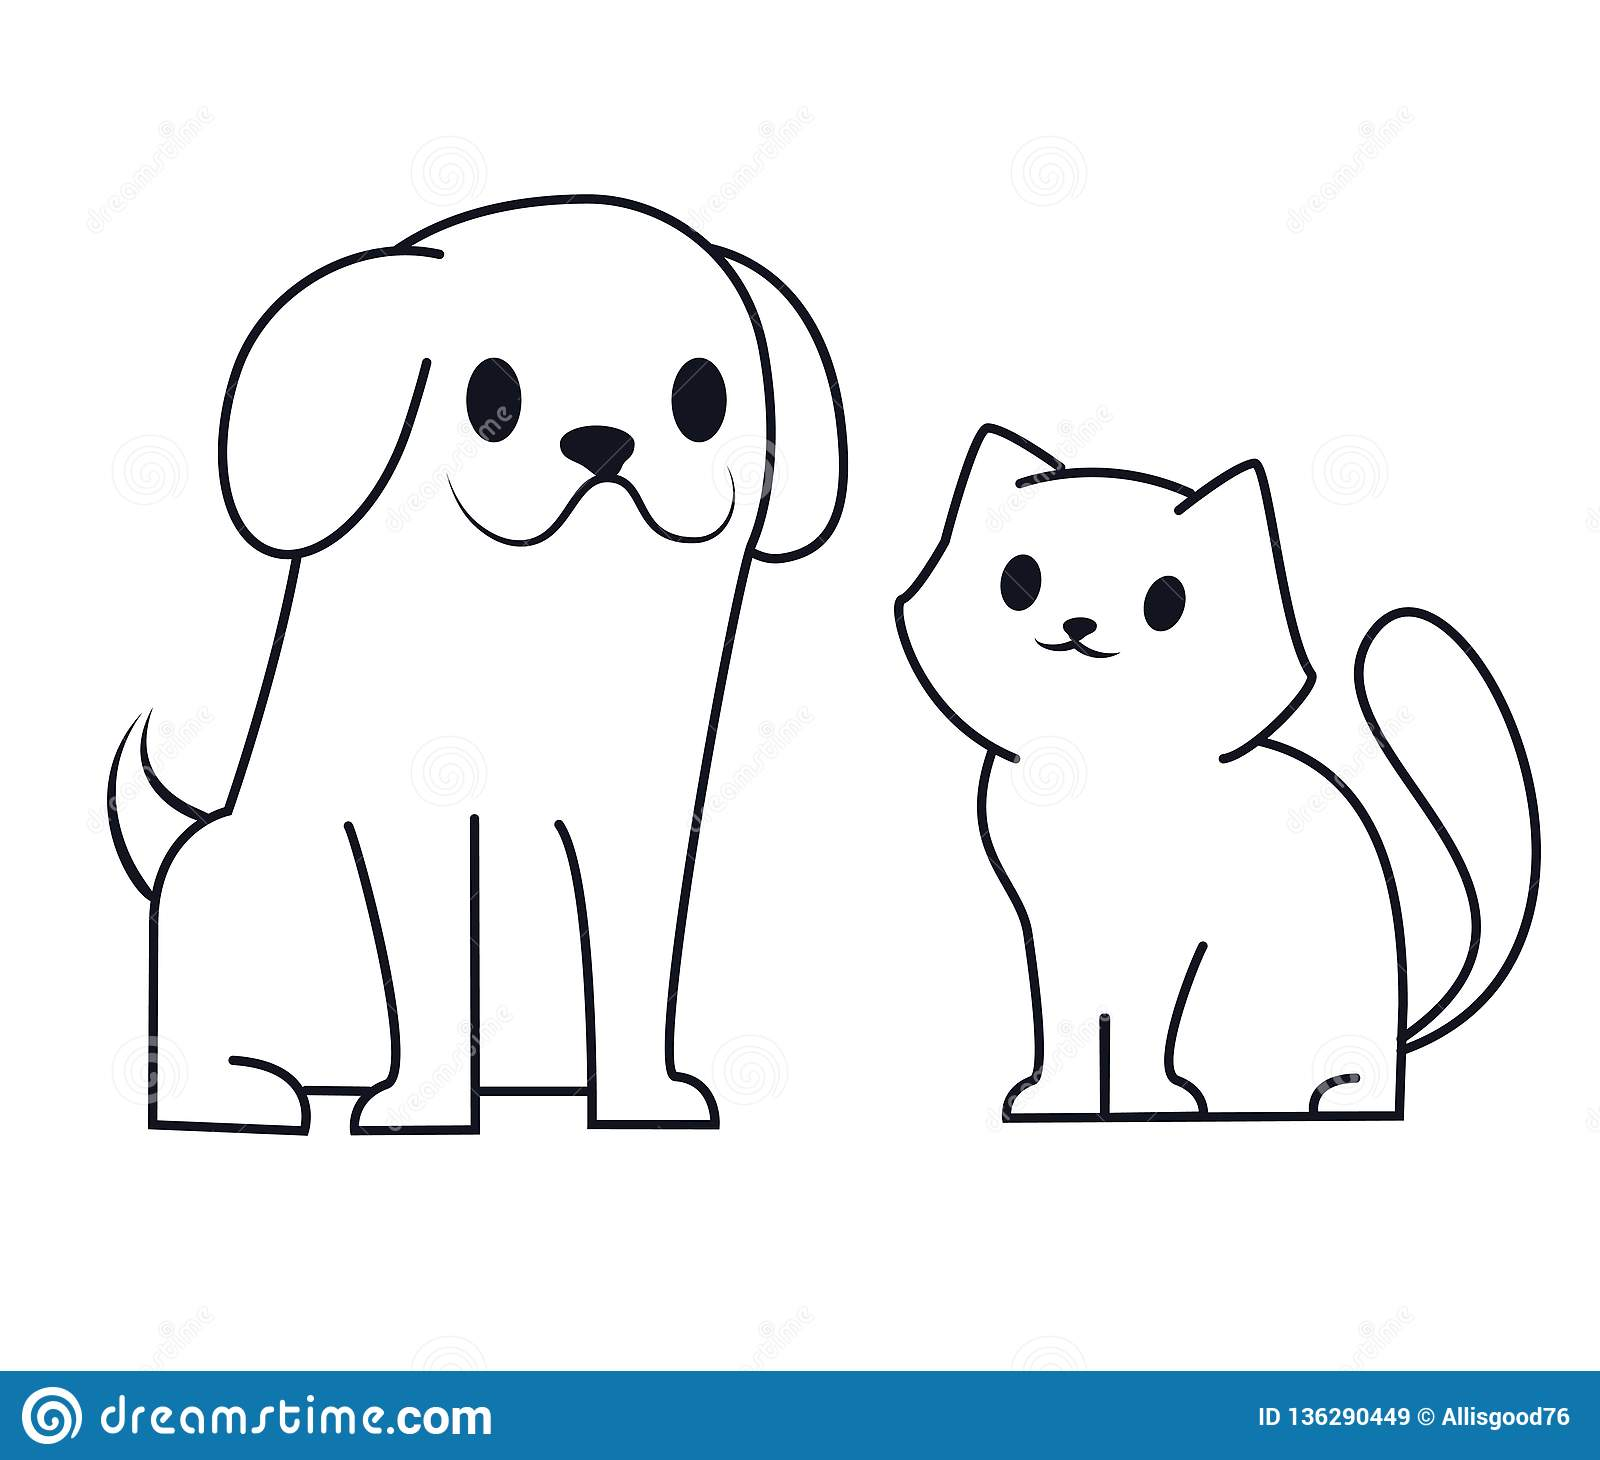 Simple Line Icon Design Of Puppy And Kitten Cute Little Cartoon